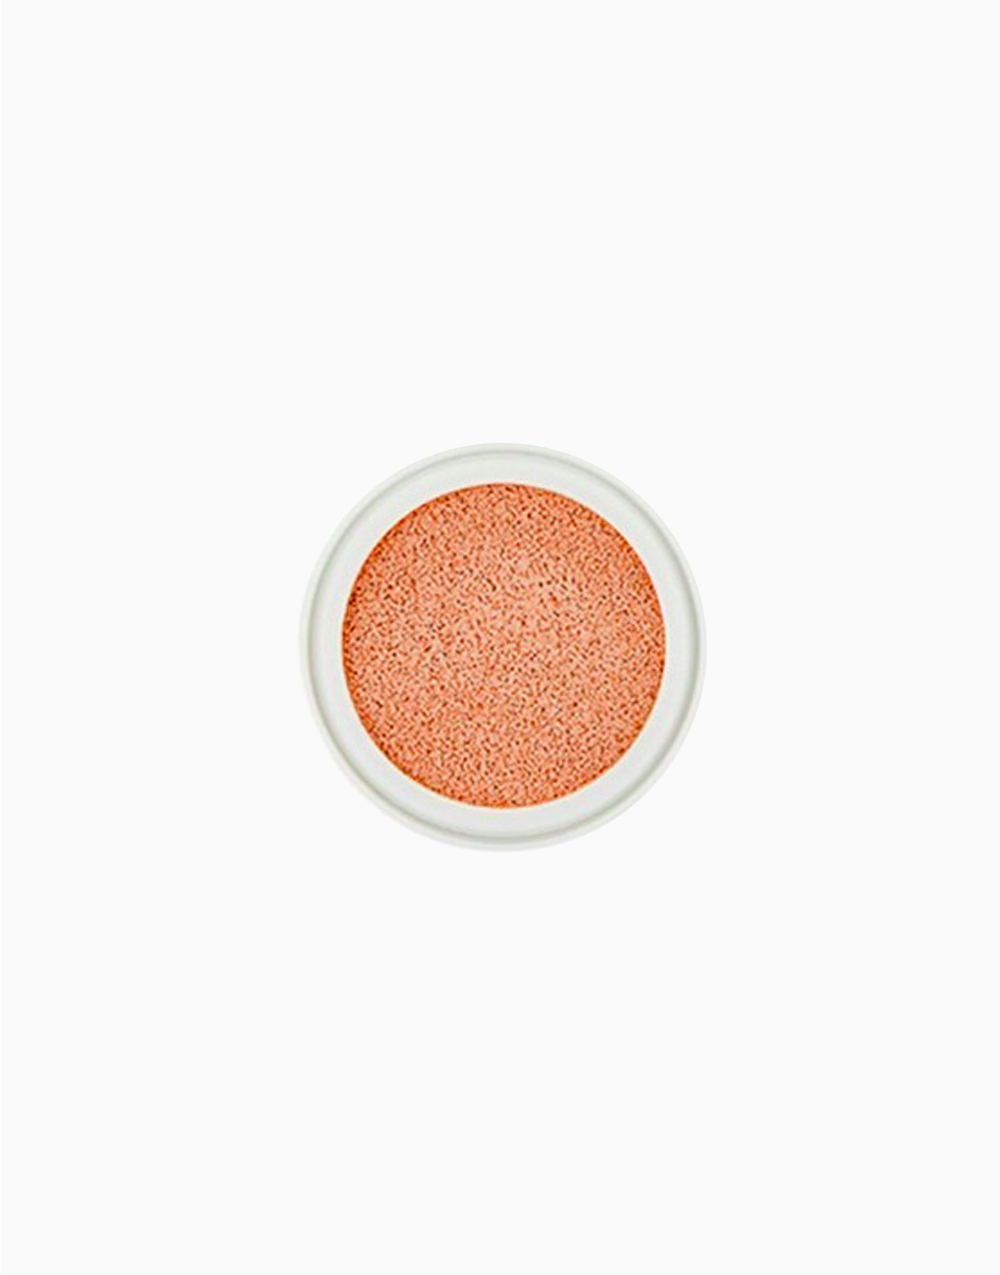 The Face Shop Waterproof Cushion by The Face Shop | V203